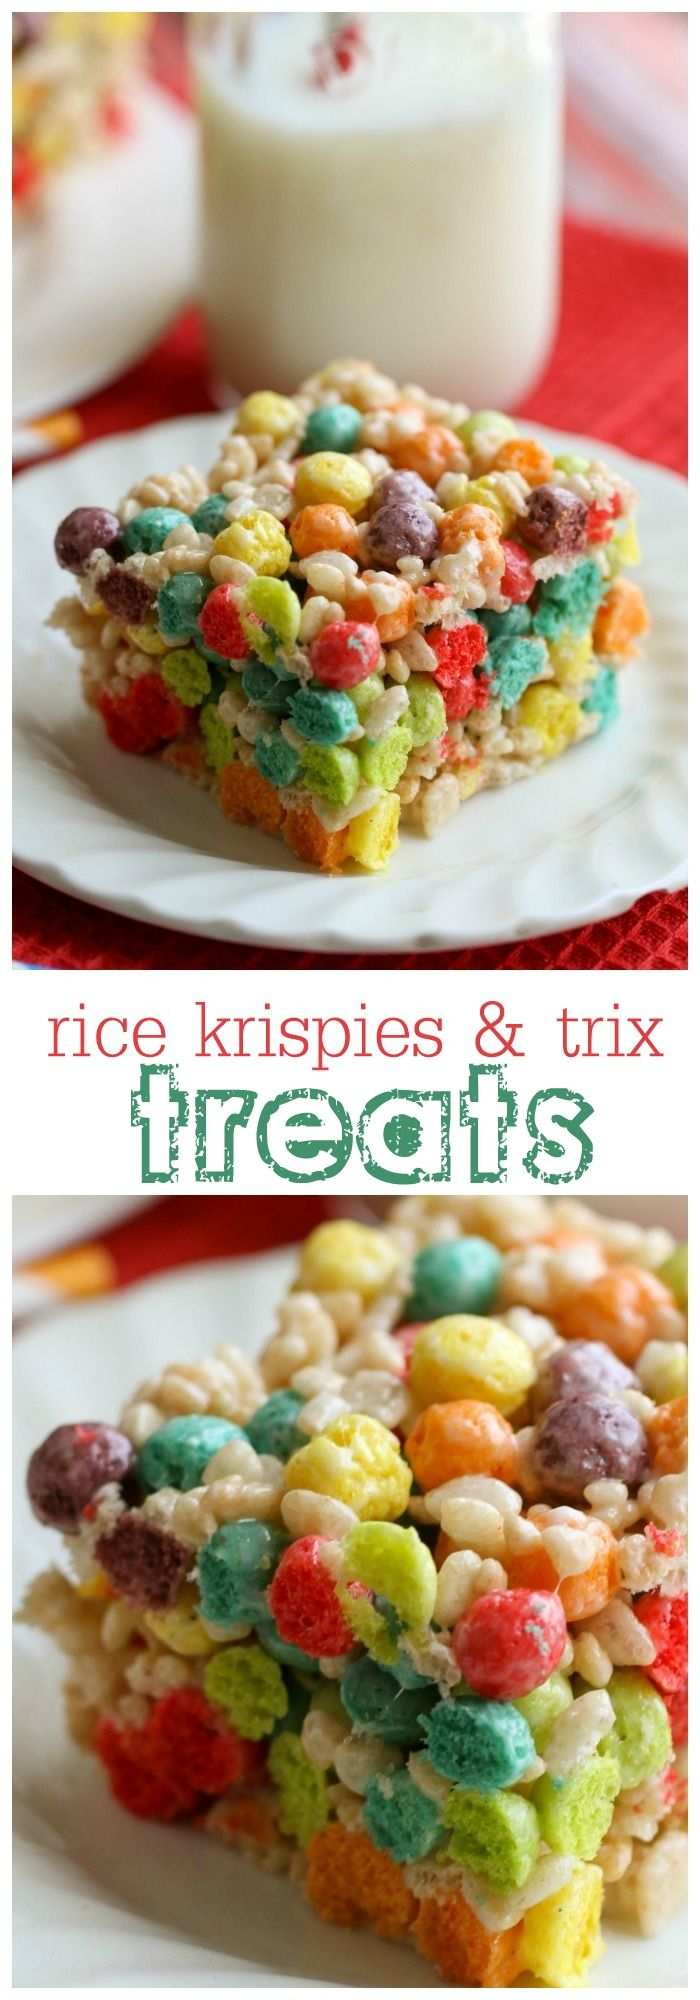 Rice Krispies and Trix treats - the kids love this fun and simple recipe!